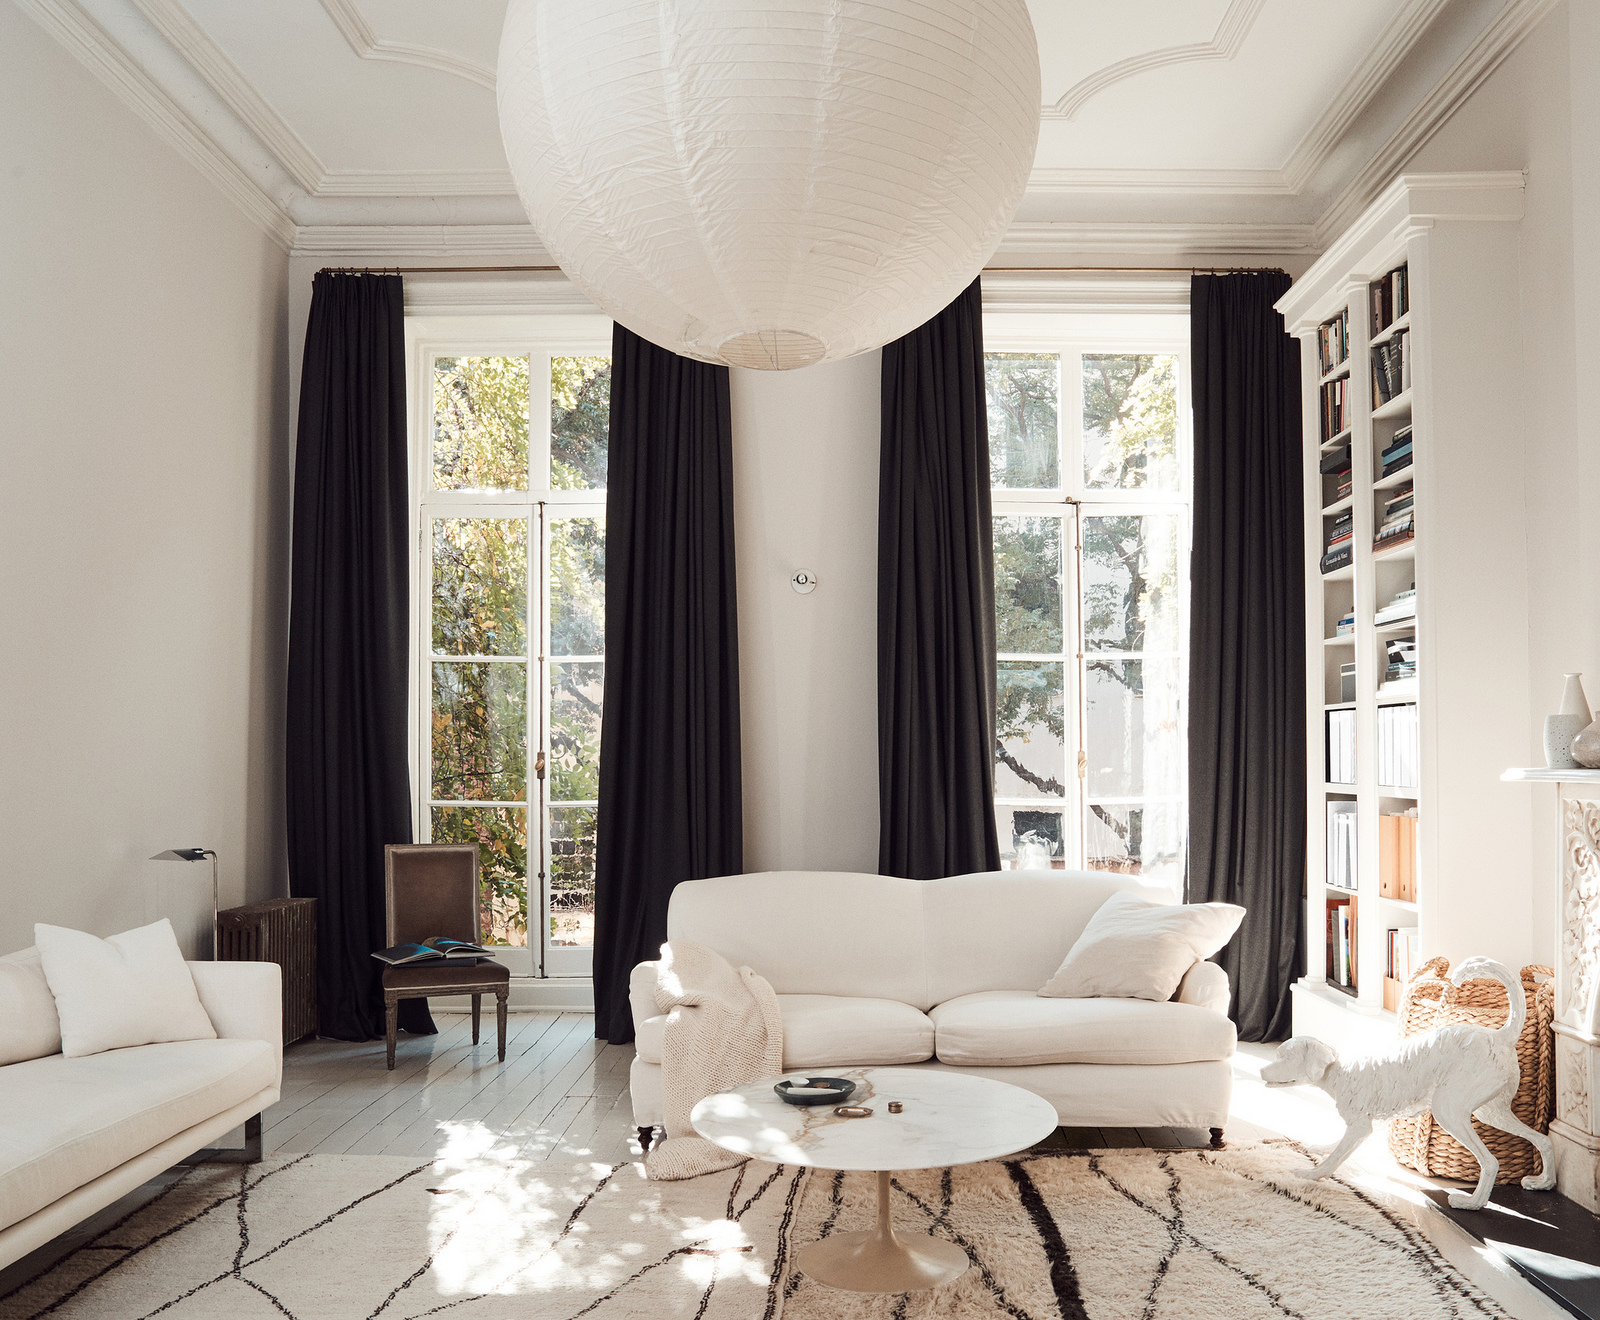 Décor Inspiration | Interior Designer: Tom Develan